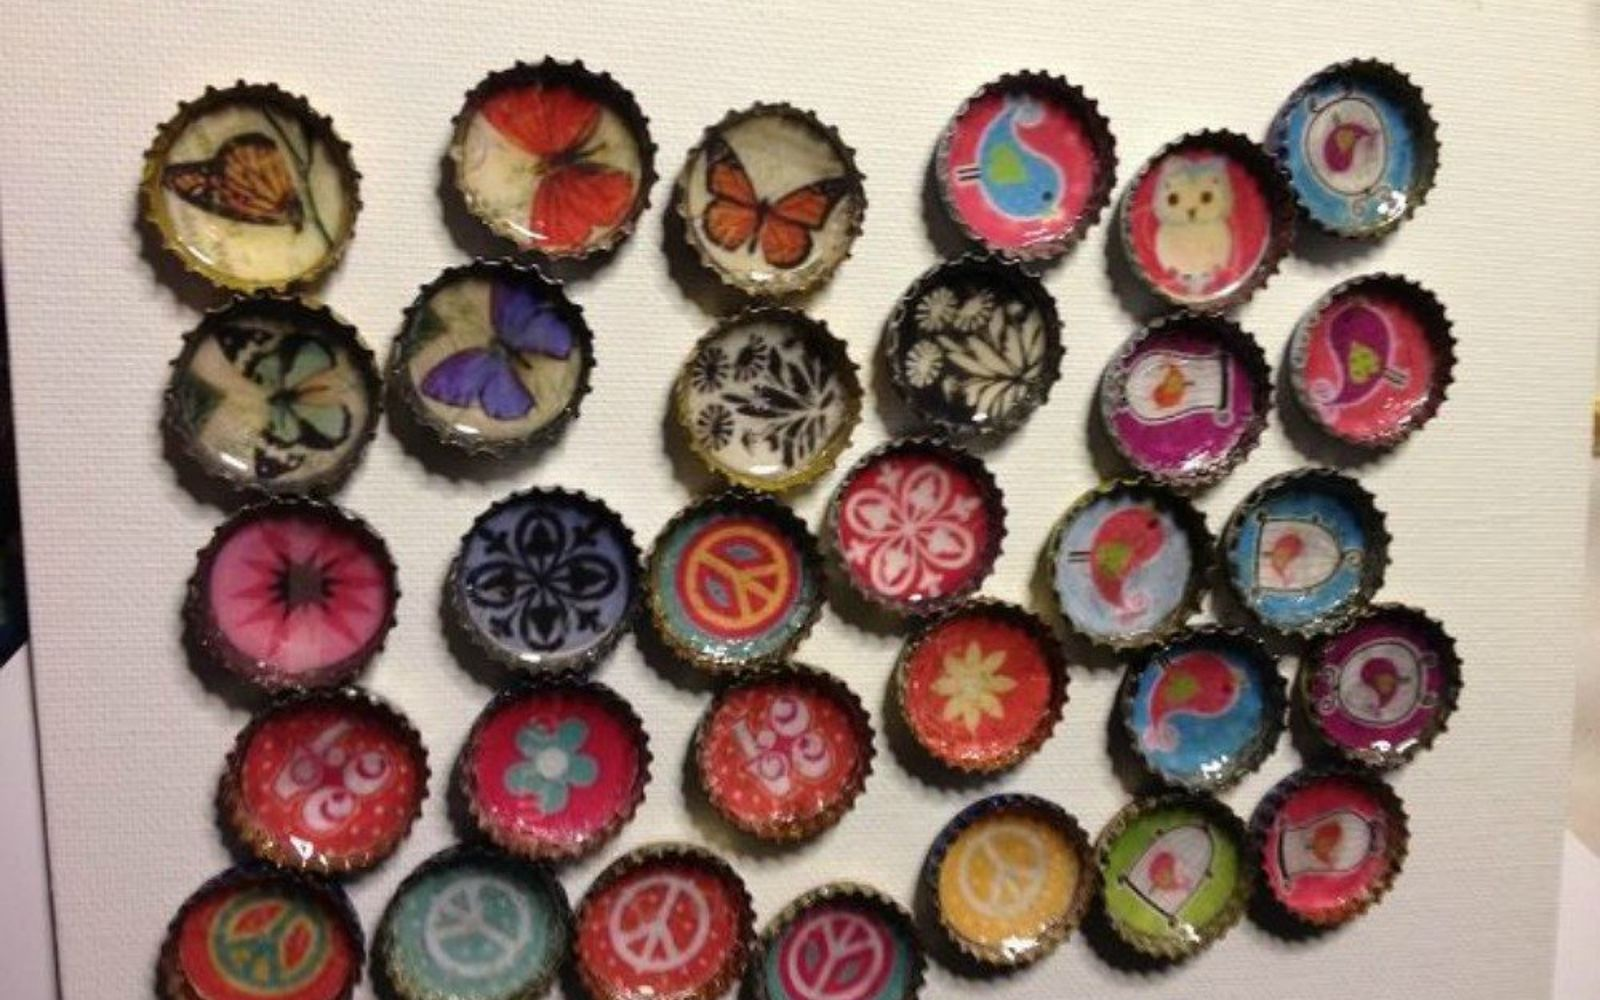 s save your bottle caps for these x crazy cool ideas, A steampunk magnet